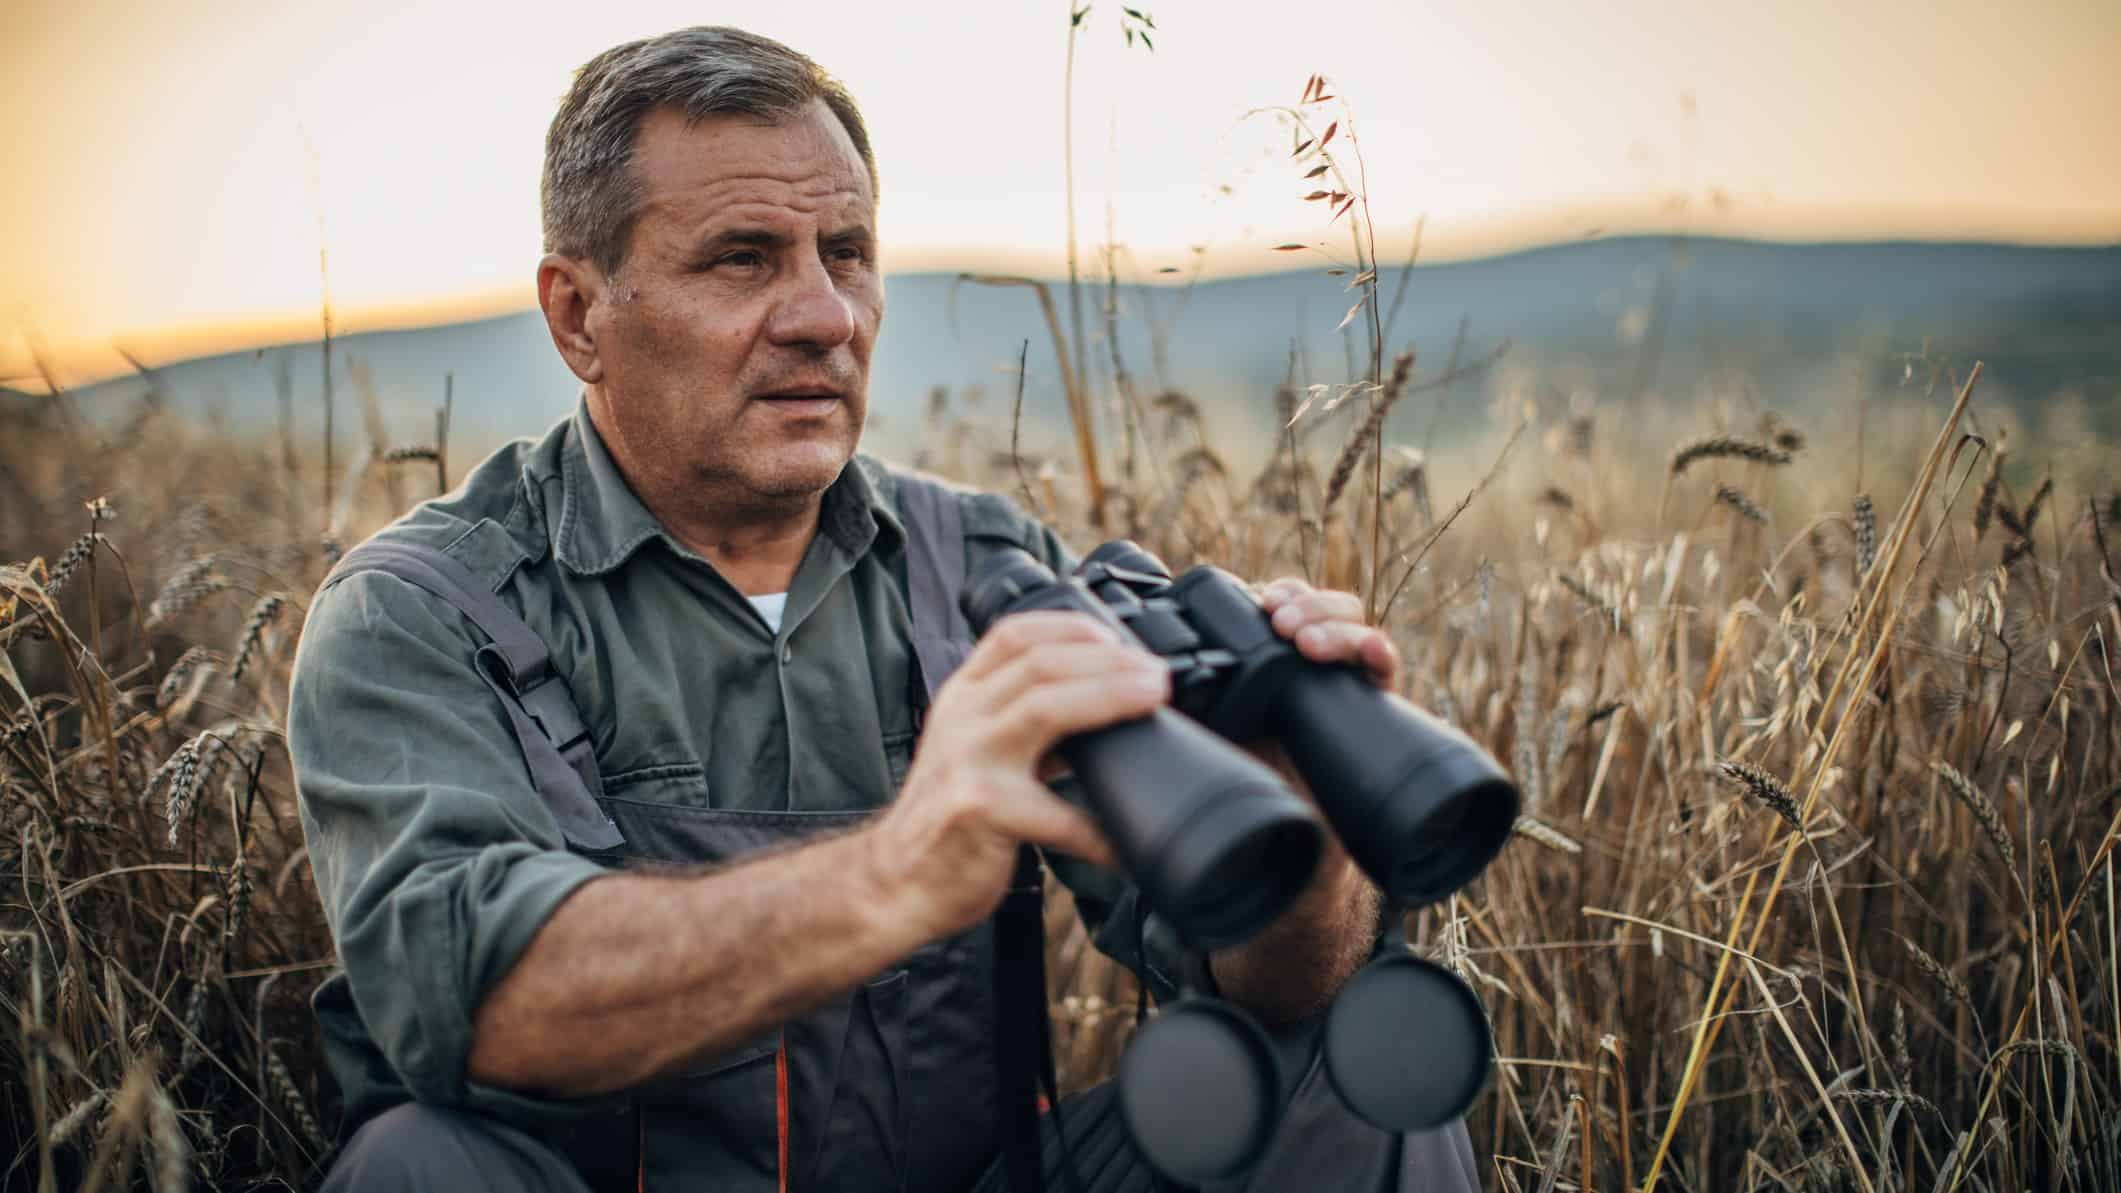 man sitting in field of grain with binoculars as if watching asx share price